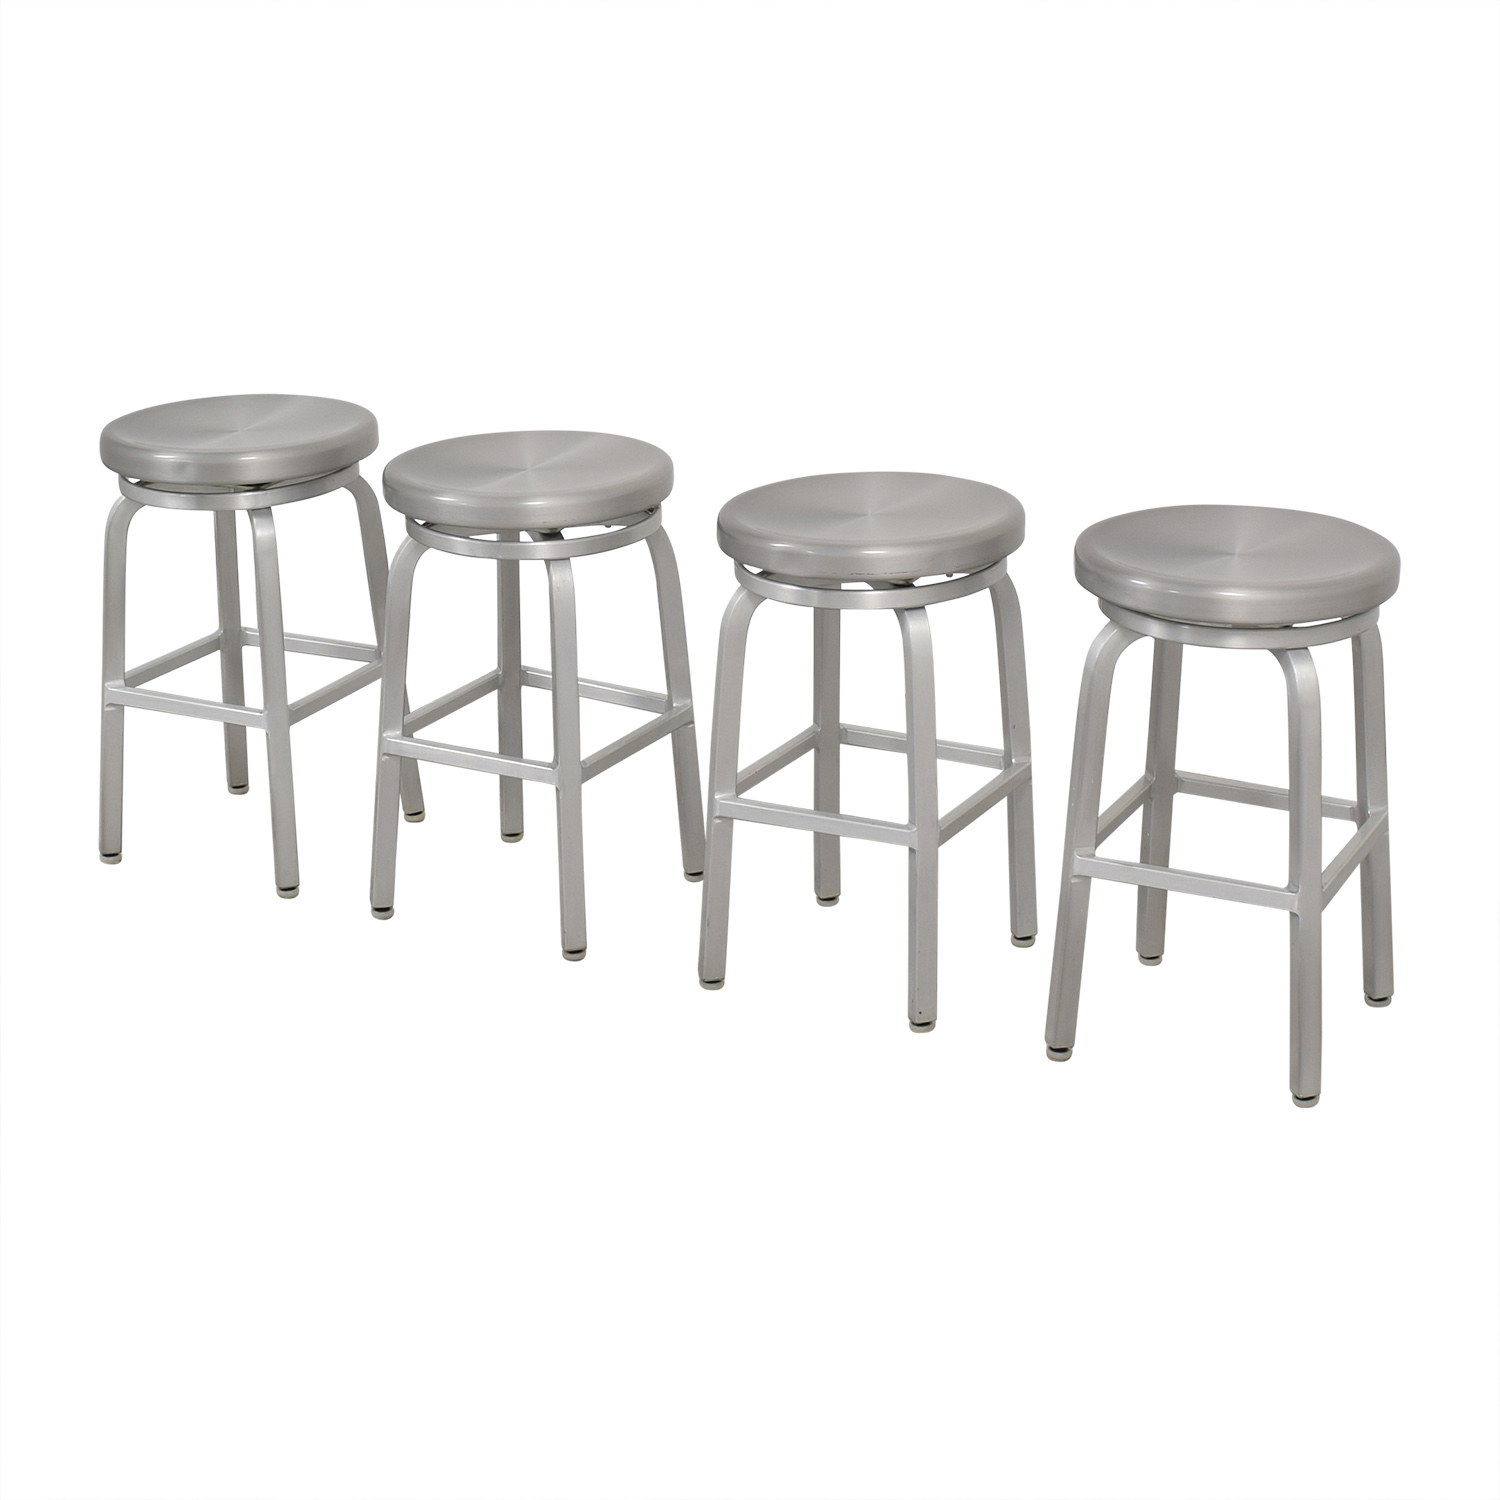 Crate & Barrel Spin Swivel Backless Counter Stool Crate & Barrel